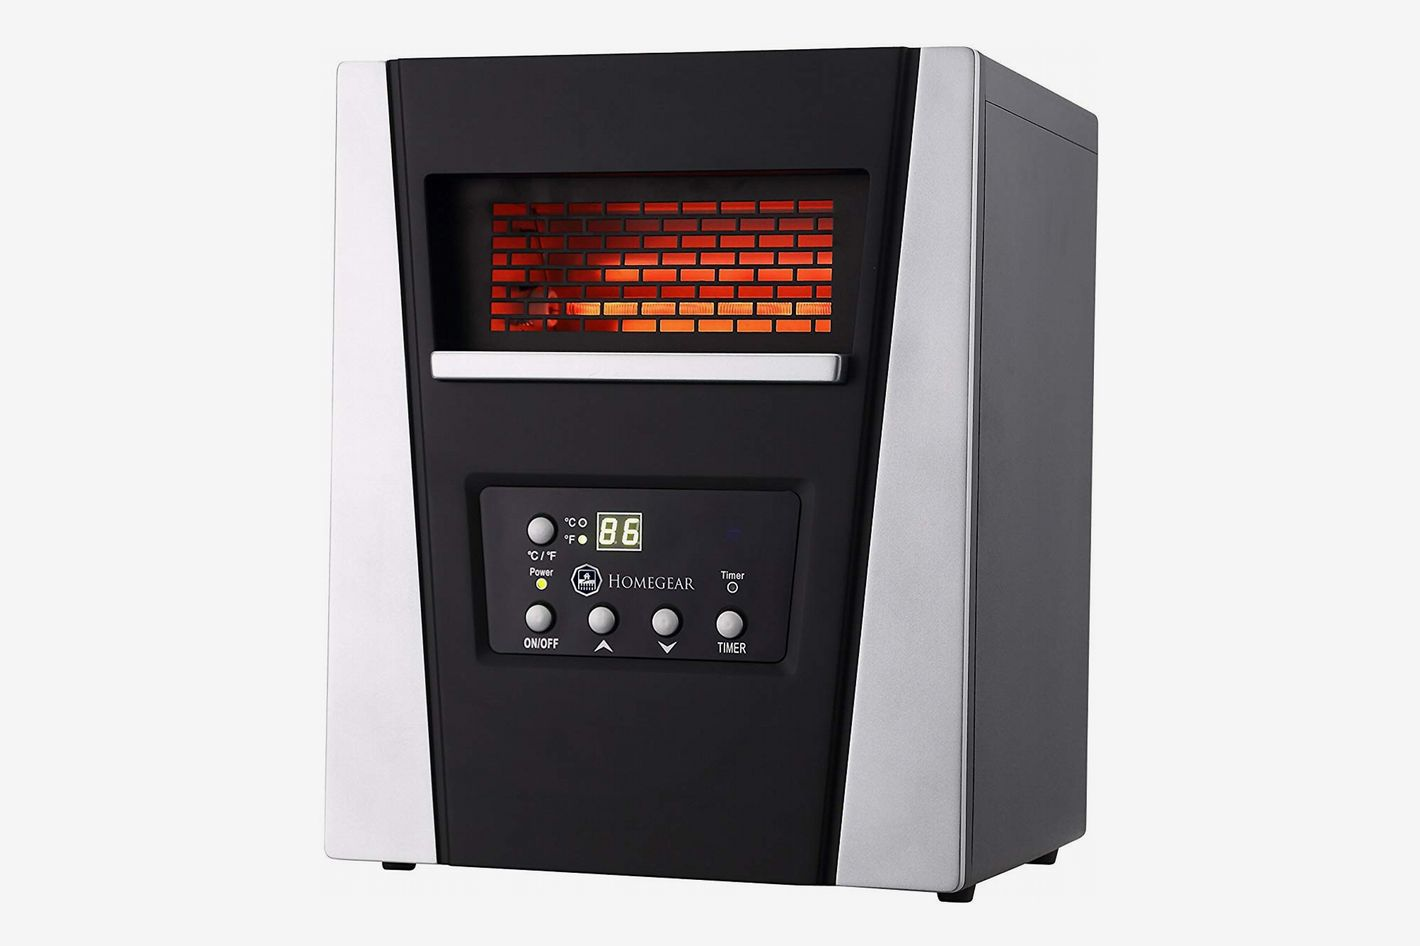 Homegear 1500 sq ft Infrared Portable Space Heater